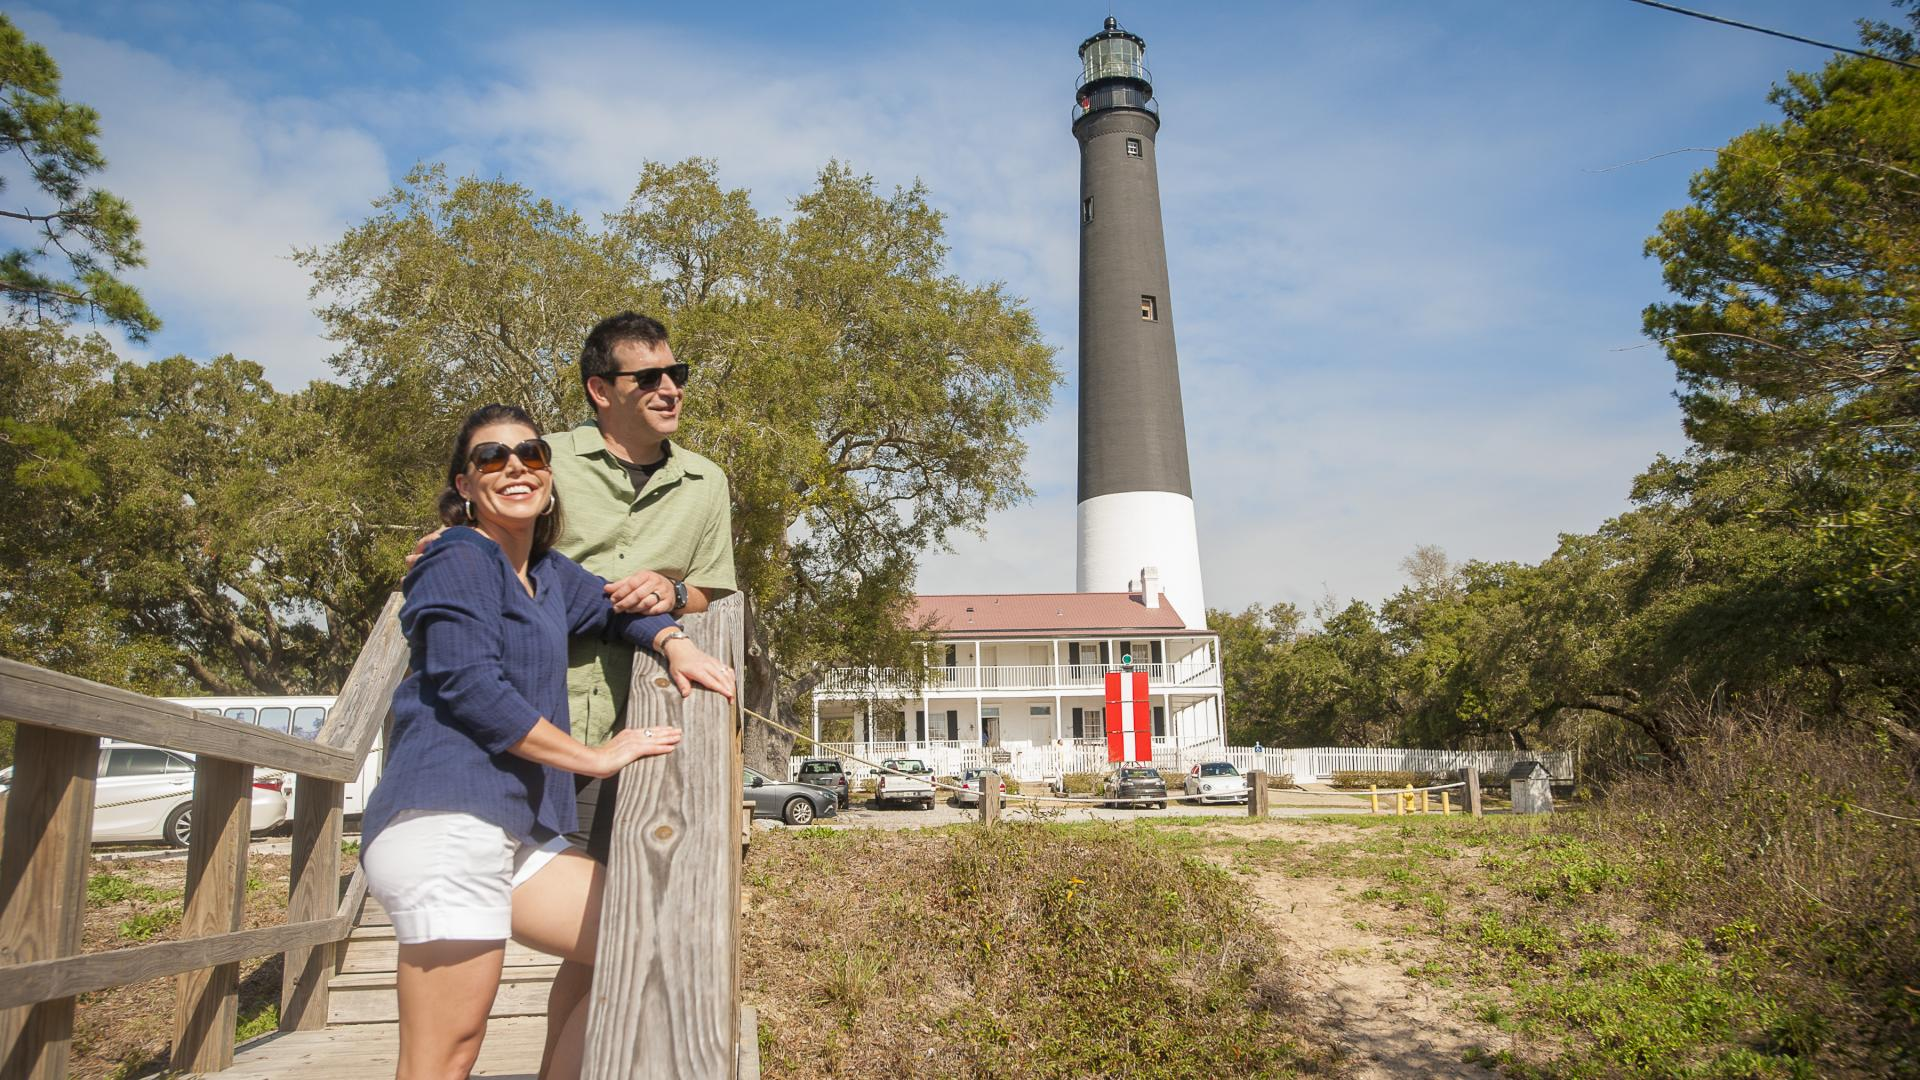 Pensacola Lighthouse & Museum, Pensacola